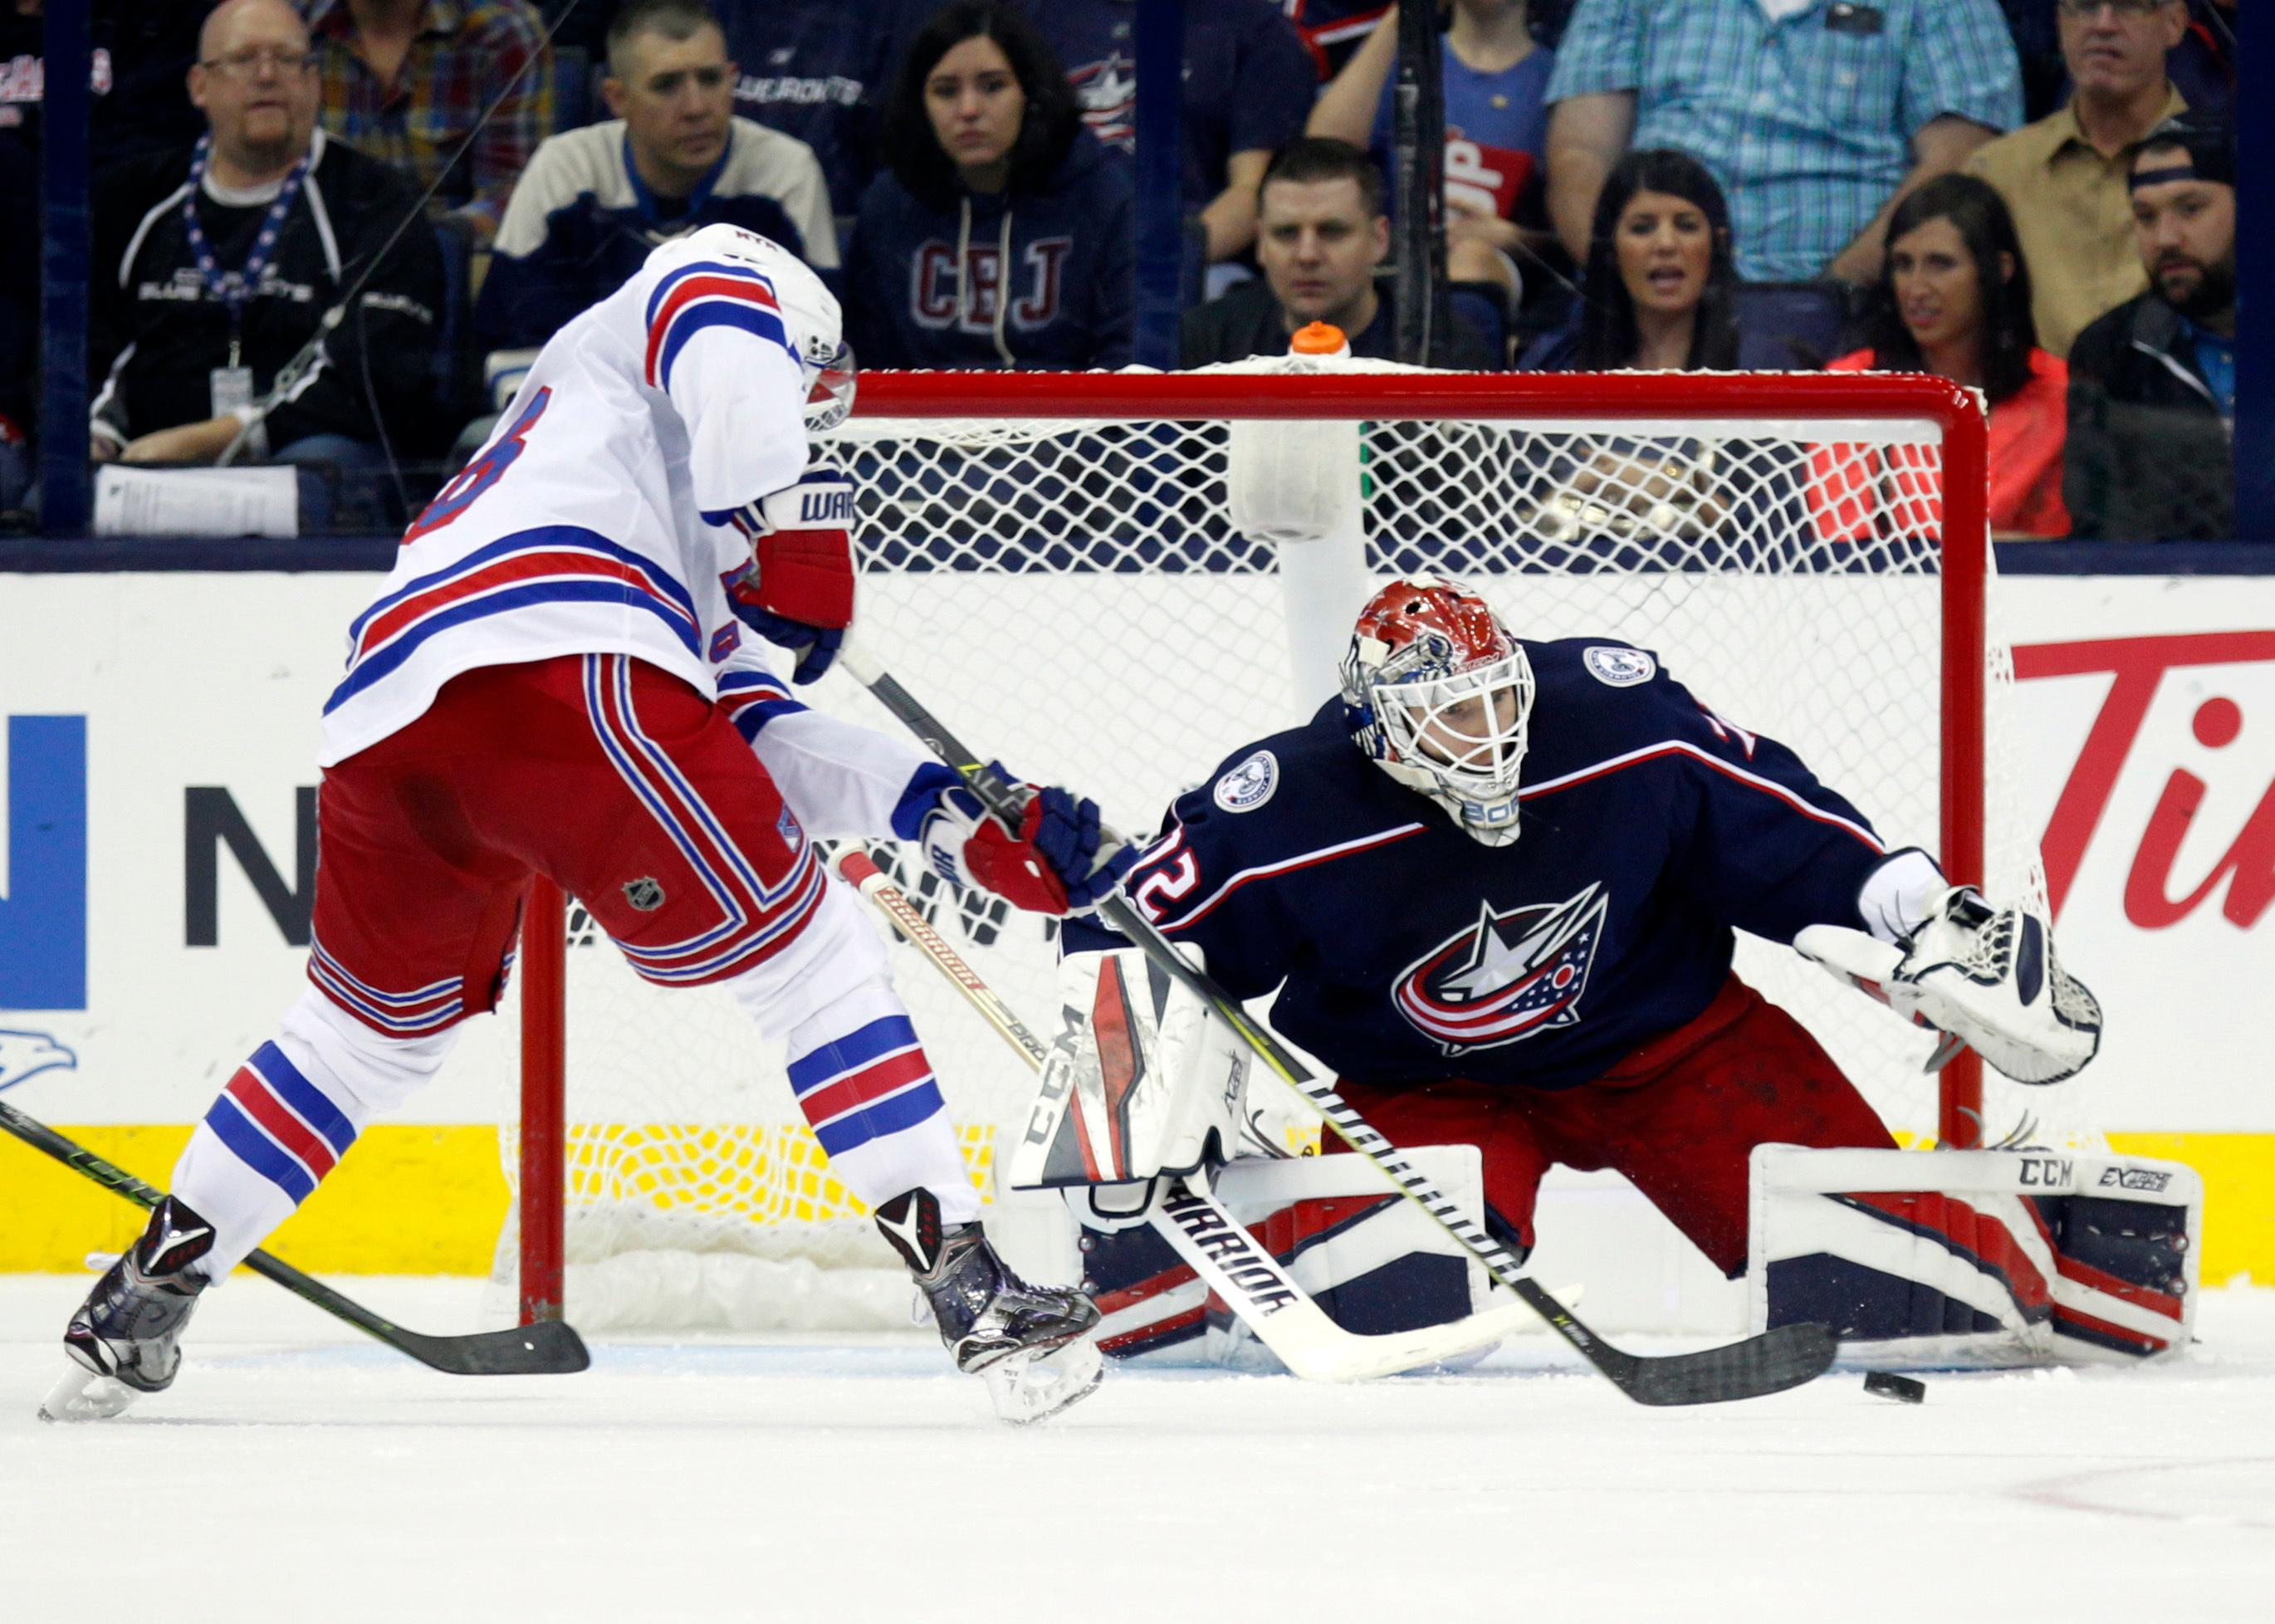 Columbus Blue Jackets goalie Sergei Bobrovsky, right, of Russia, stops a shot by New York Rangers forward Jimmy Vesey during the second period of an NHL hockey game in Columbus, Ohio, Friday, Oct. 13, 2017. (AP Photo/Paul Vernon)